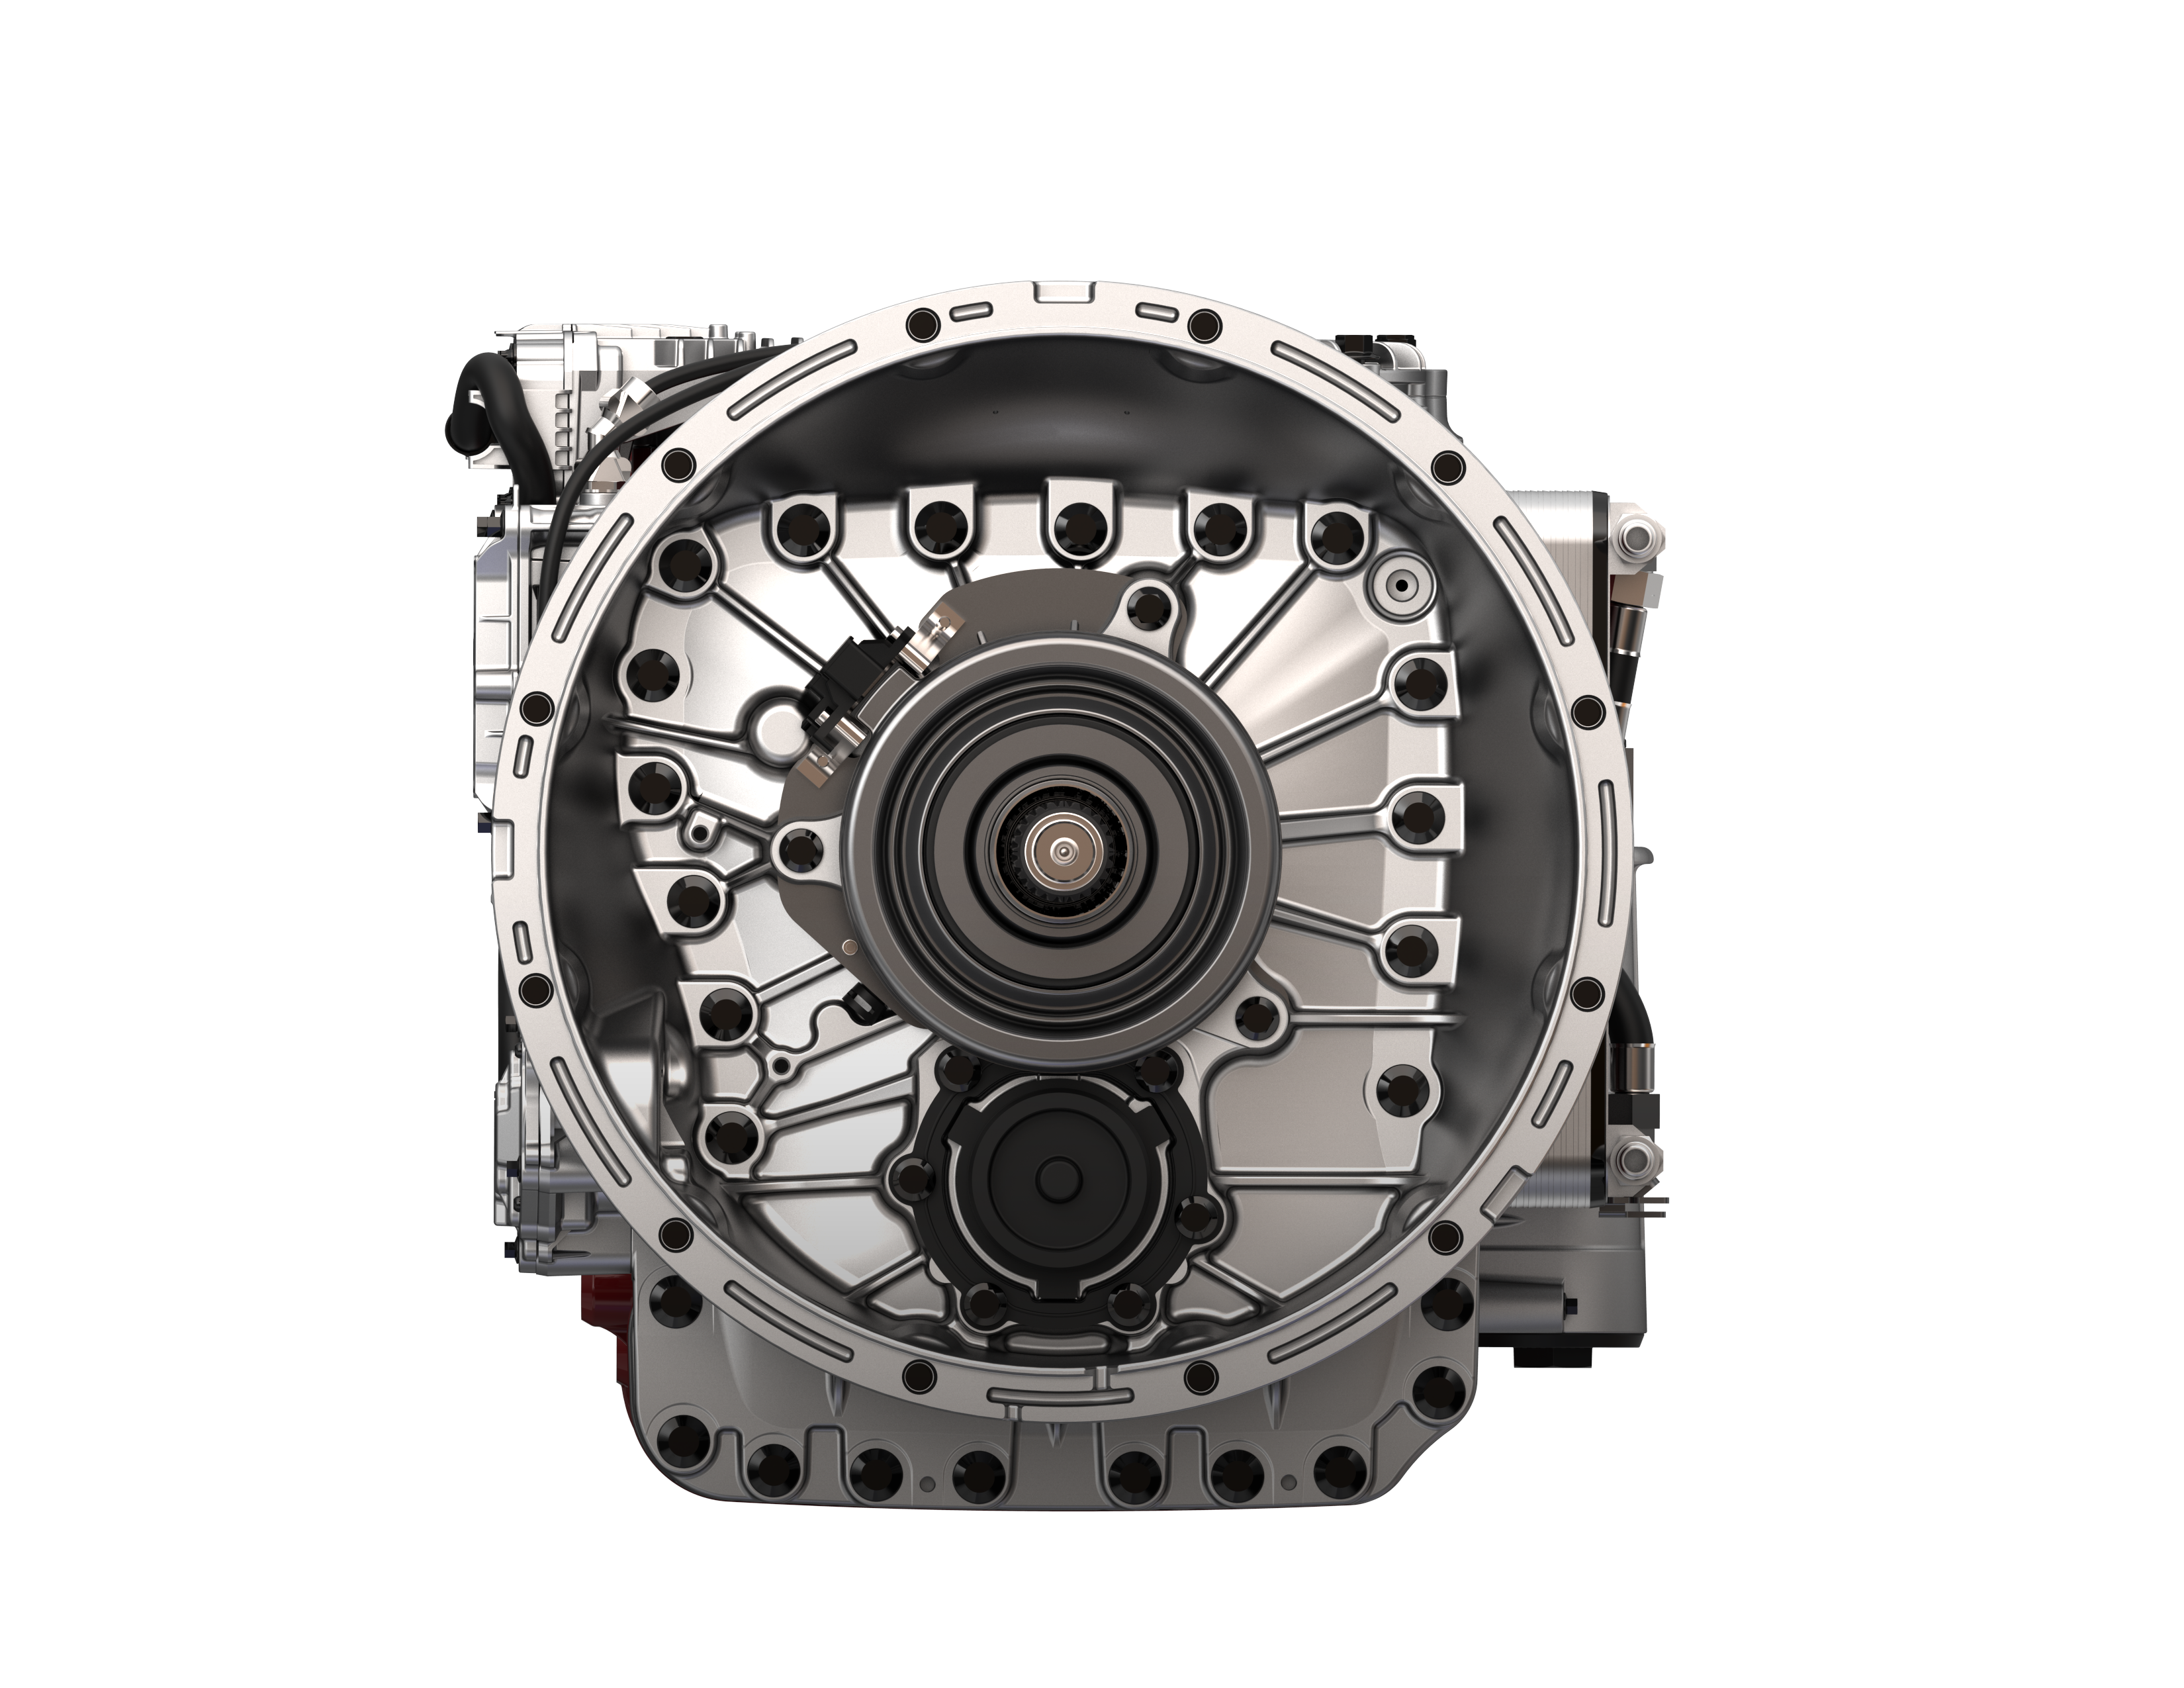 Mdrive Front on Volvo D13 Engine Service Manual